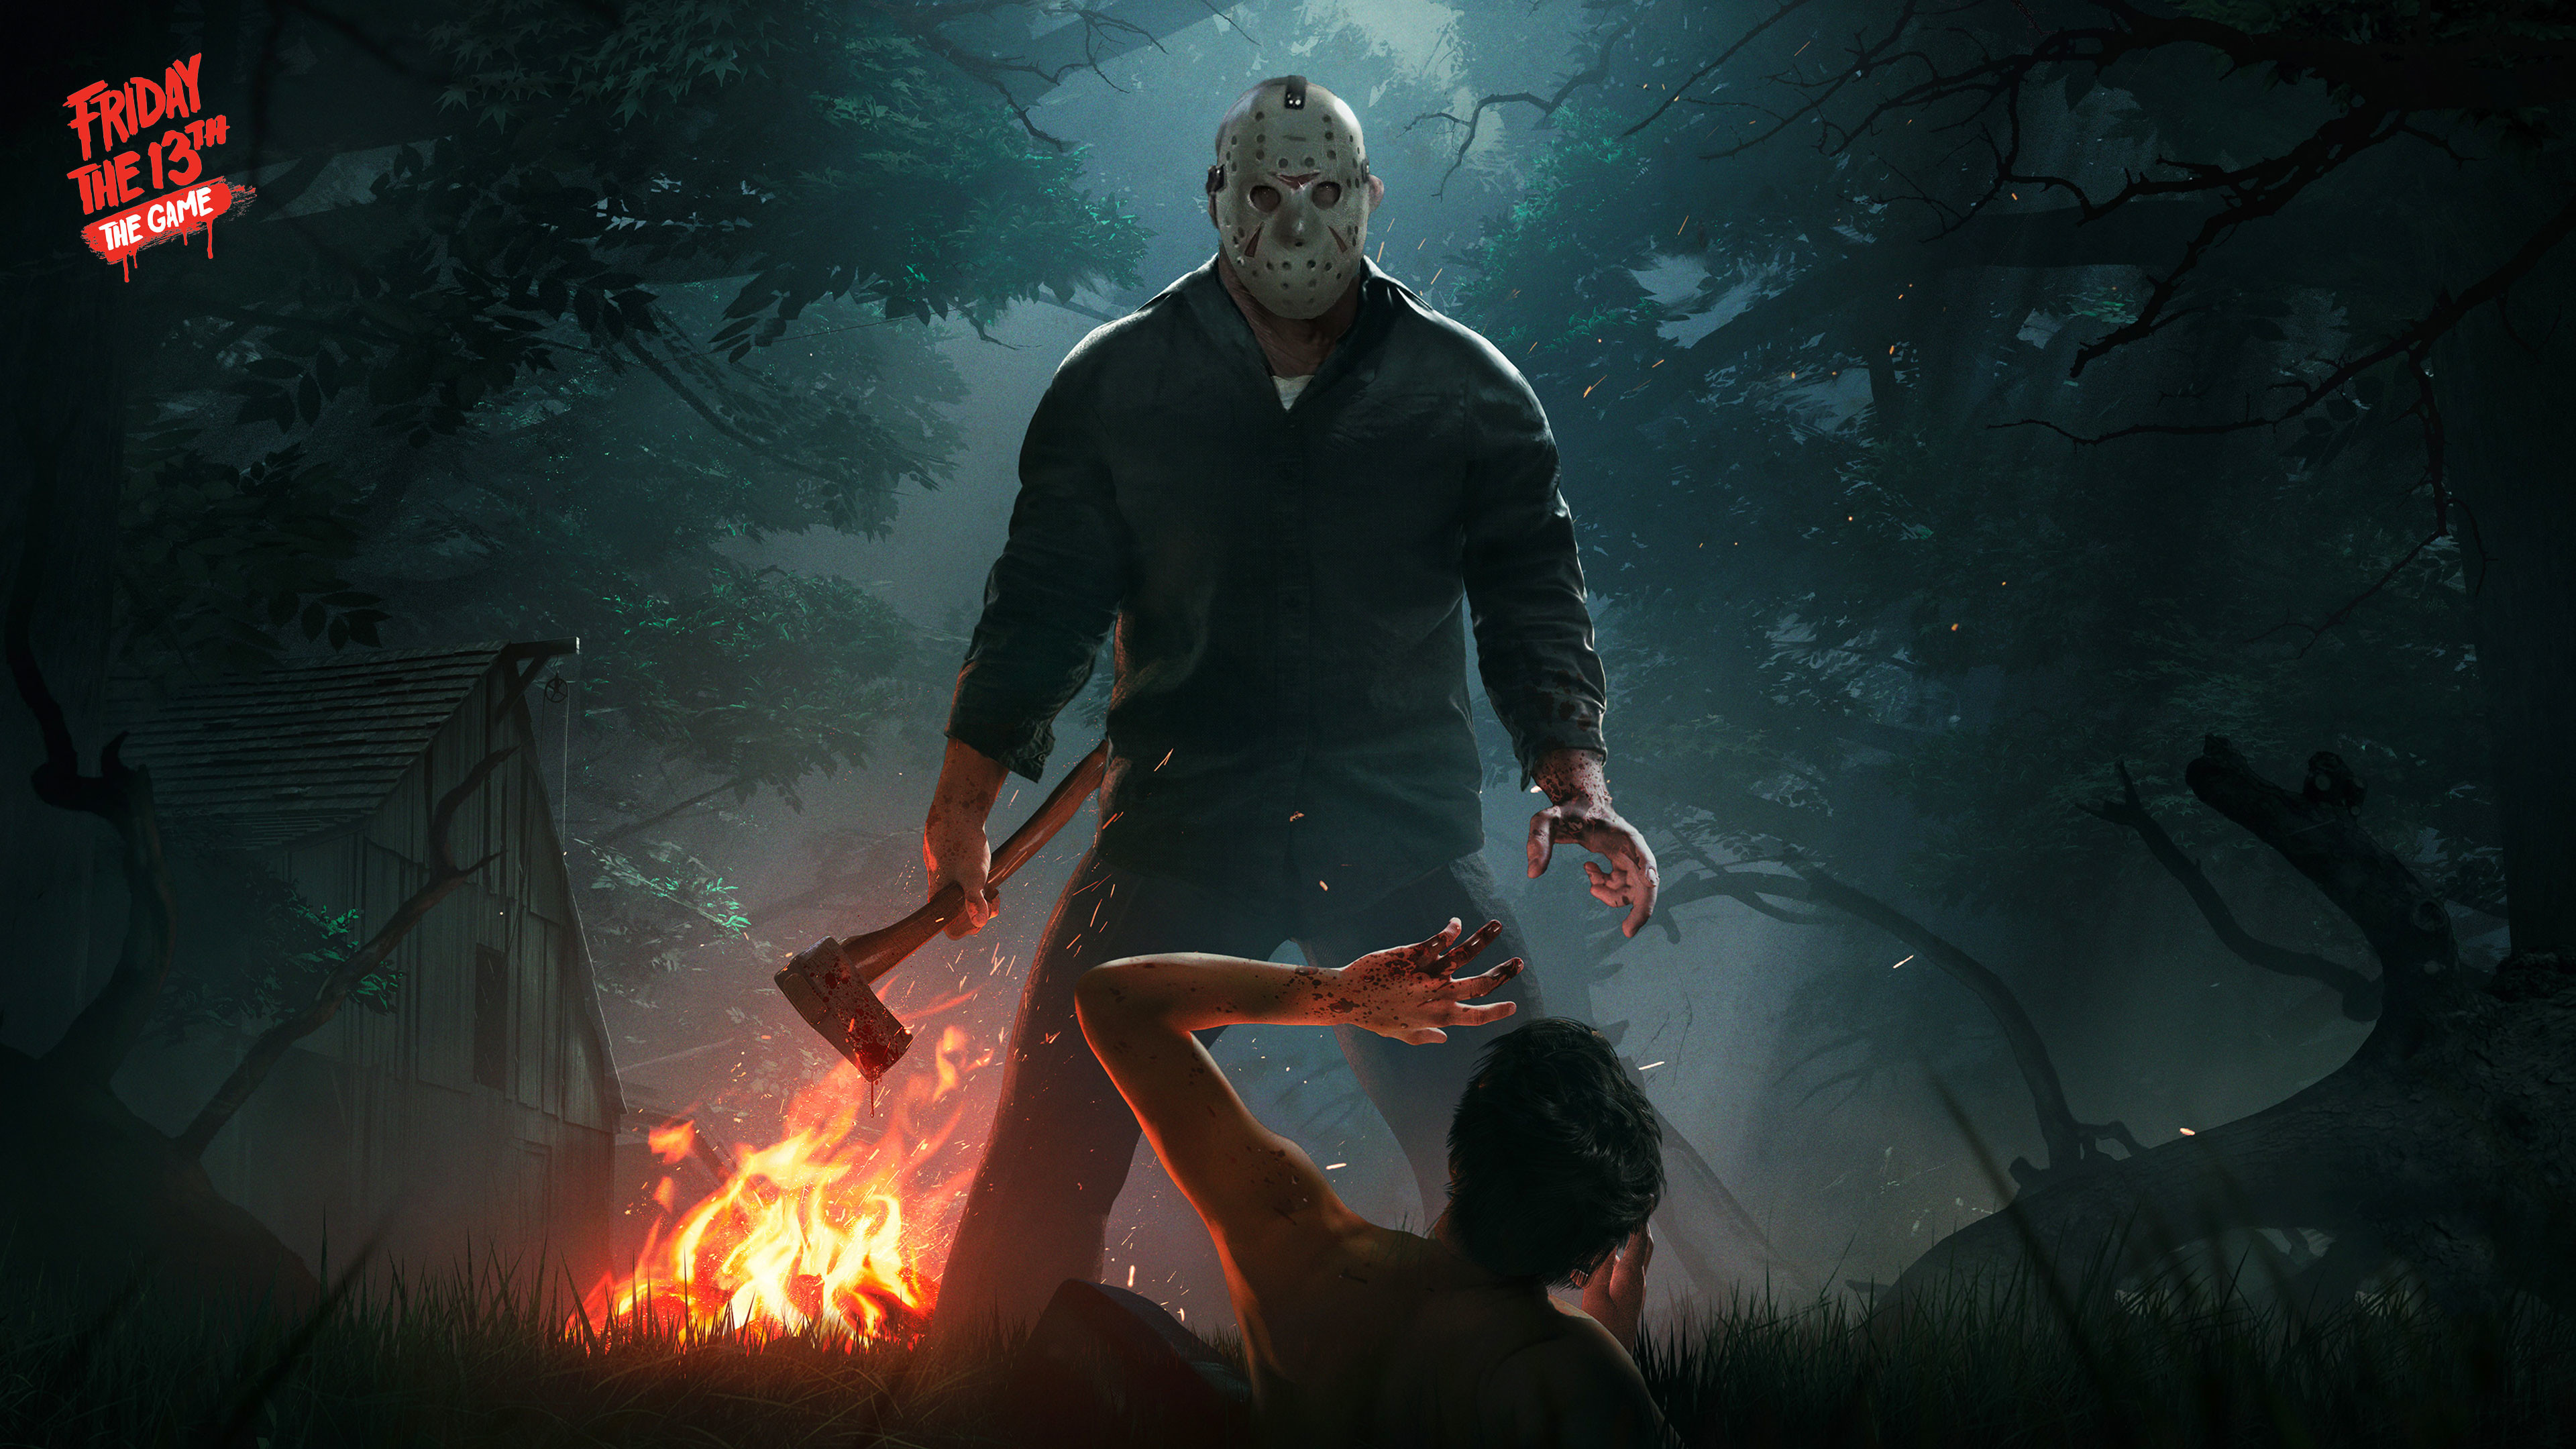 3840x2160 Friday the 13th the game 4K Wallpaper ...